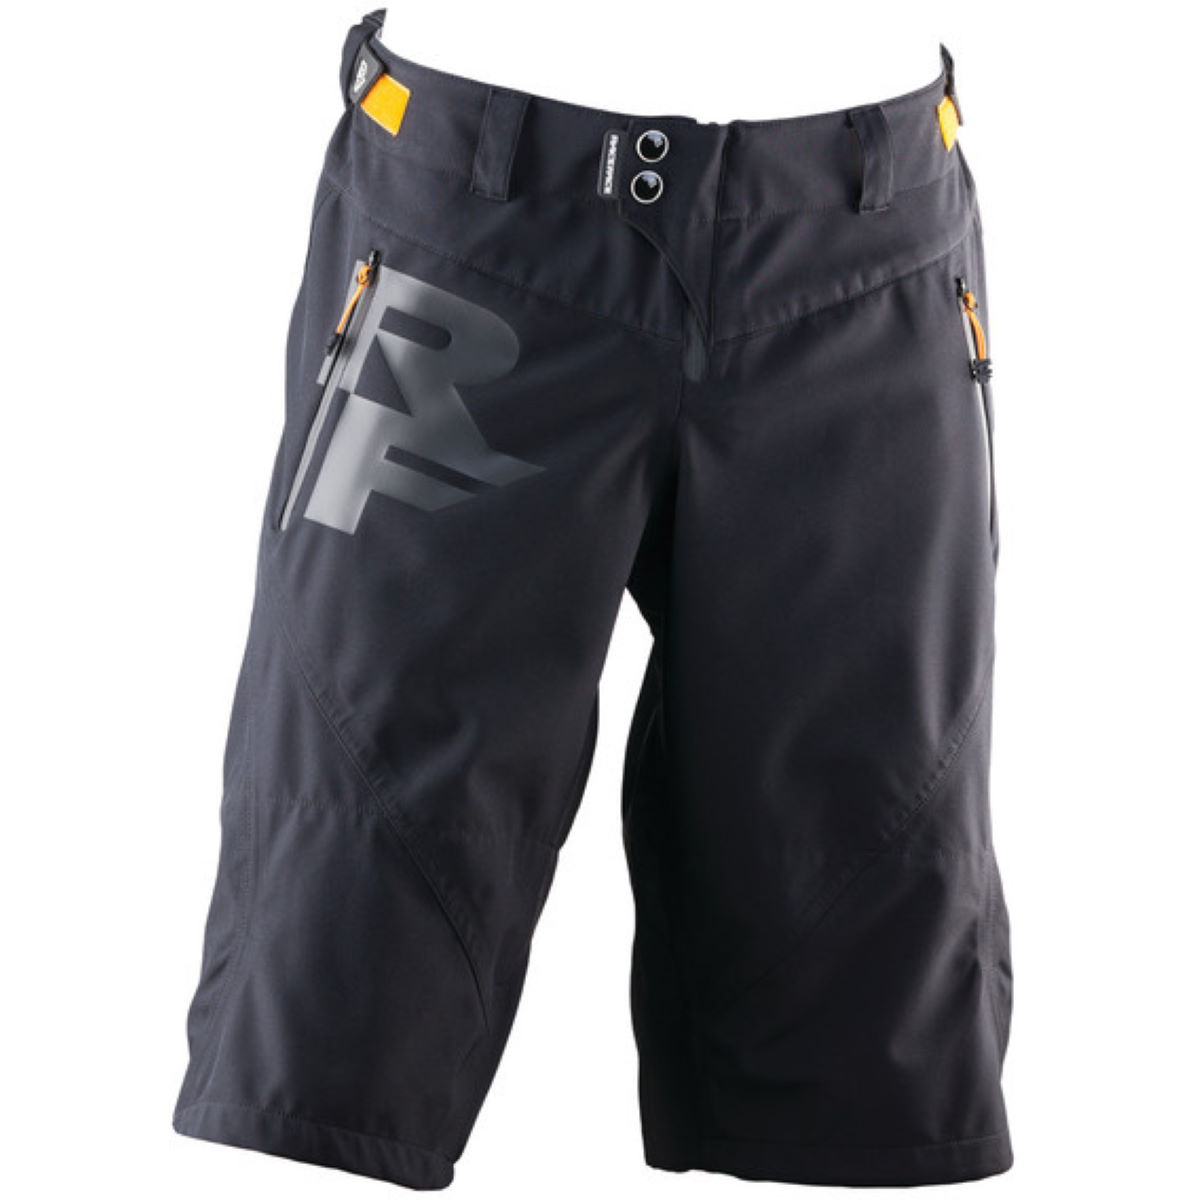 Short Race Face Agent (hiver) - L Noir Shorts amples